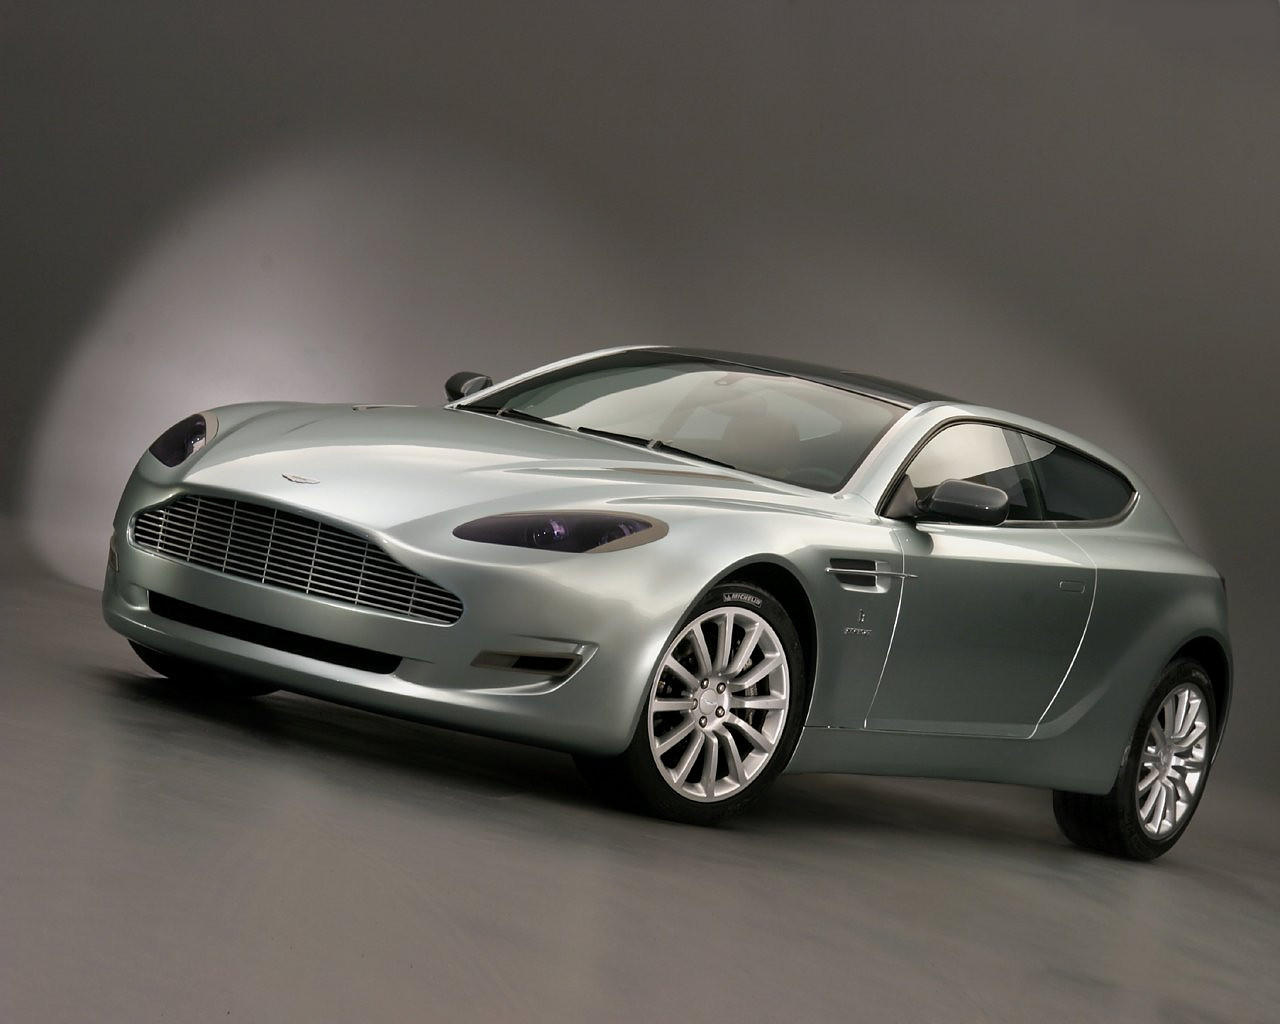 Aston Martin Bertone Jet 2 photo 20668